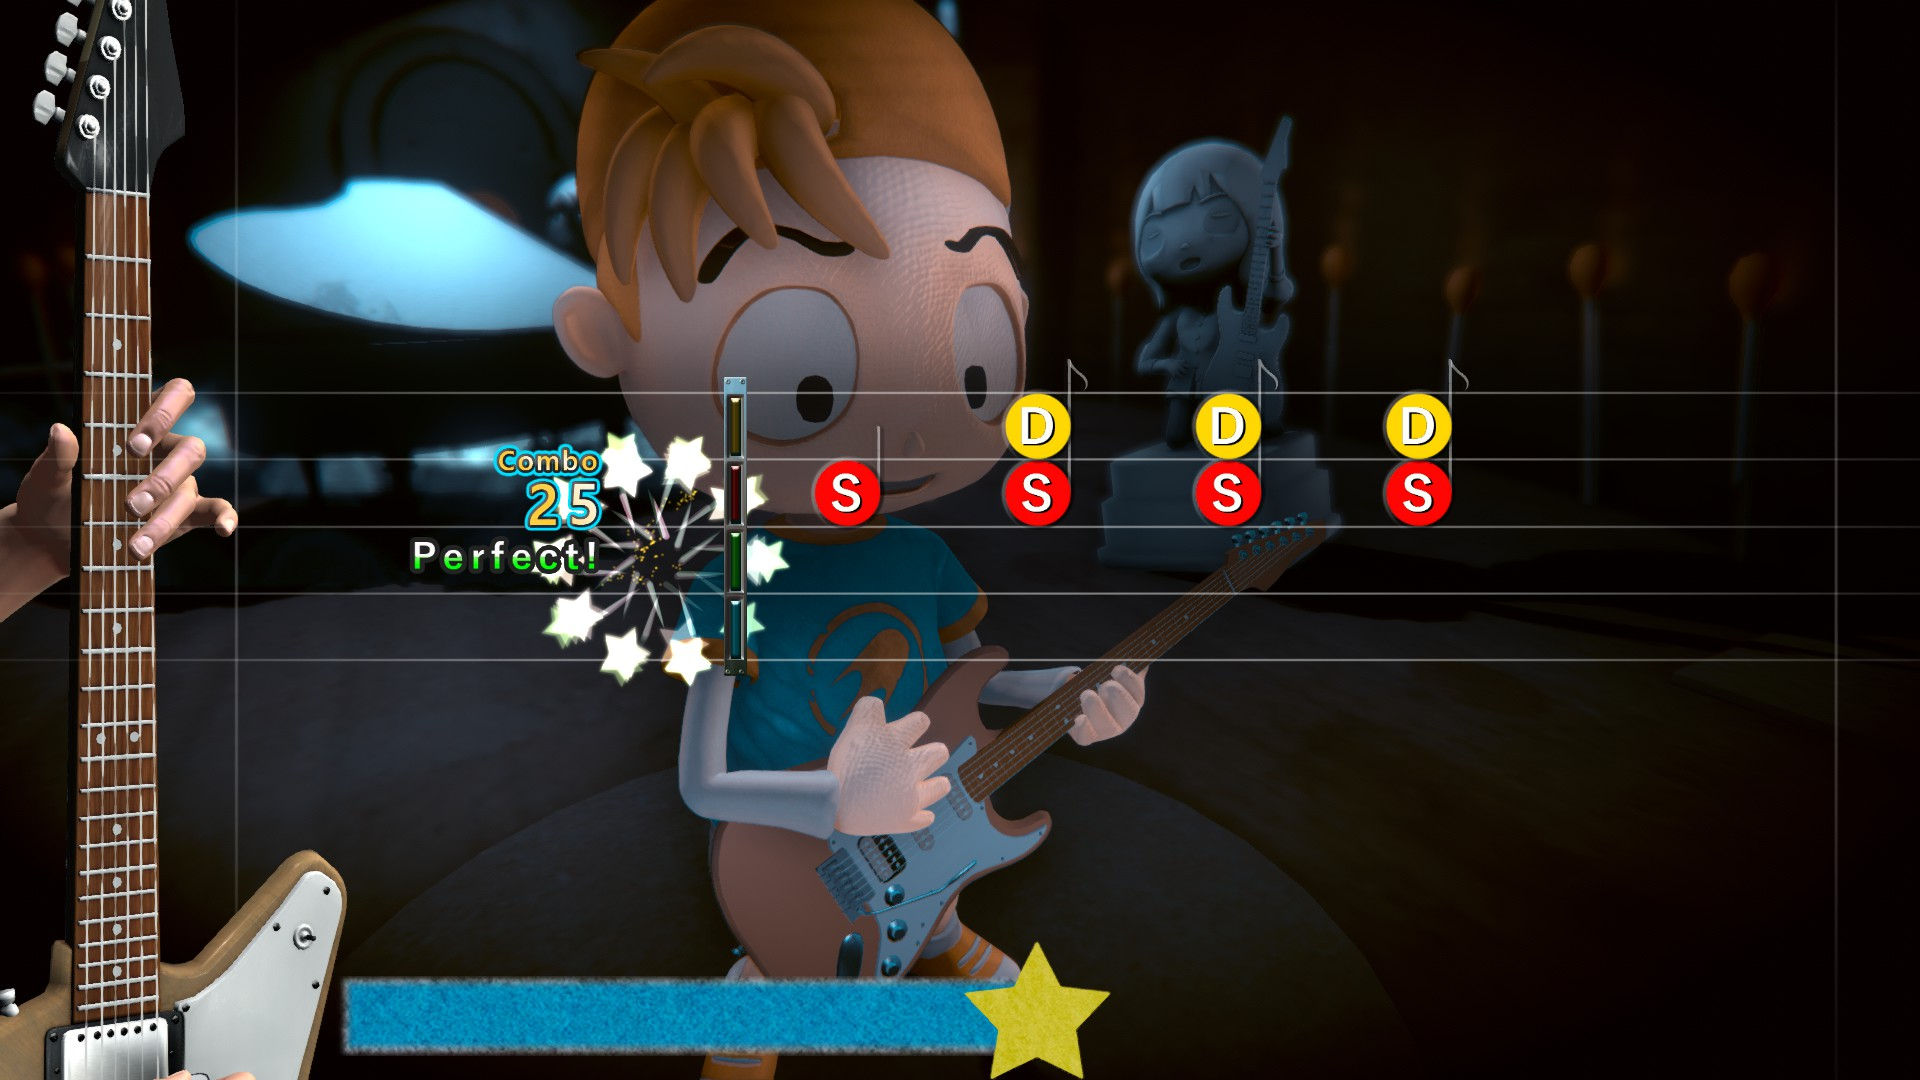 Edwin, a boy in a blue t-shirt and backwards baseball cap, plays a guitar. Superimposed over the front is a rhythm action UI, with a guitar's neck on the left and note icons floating in from the right.